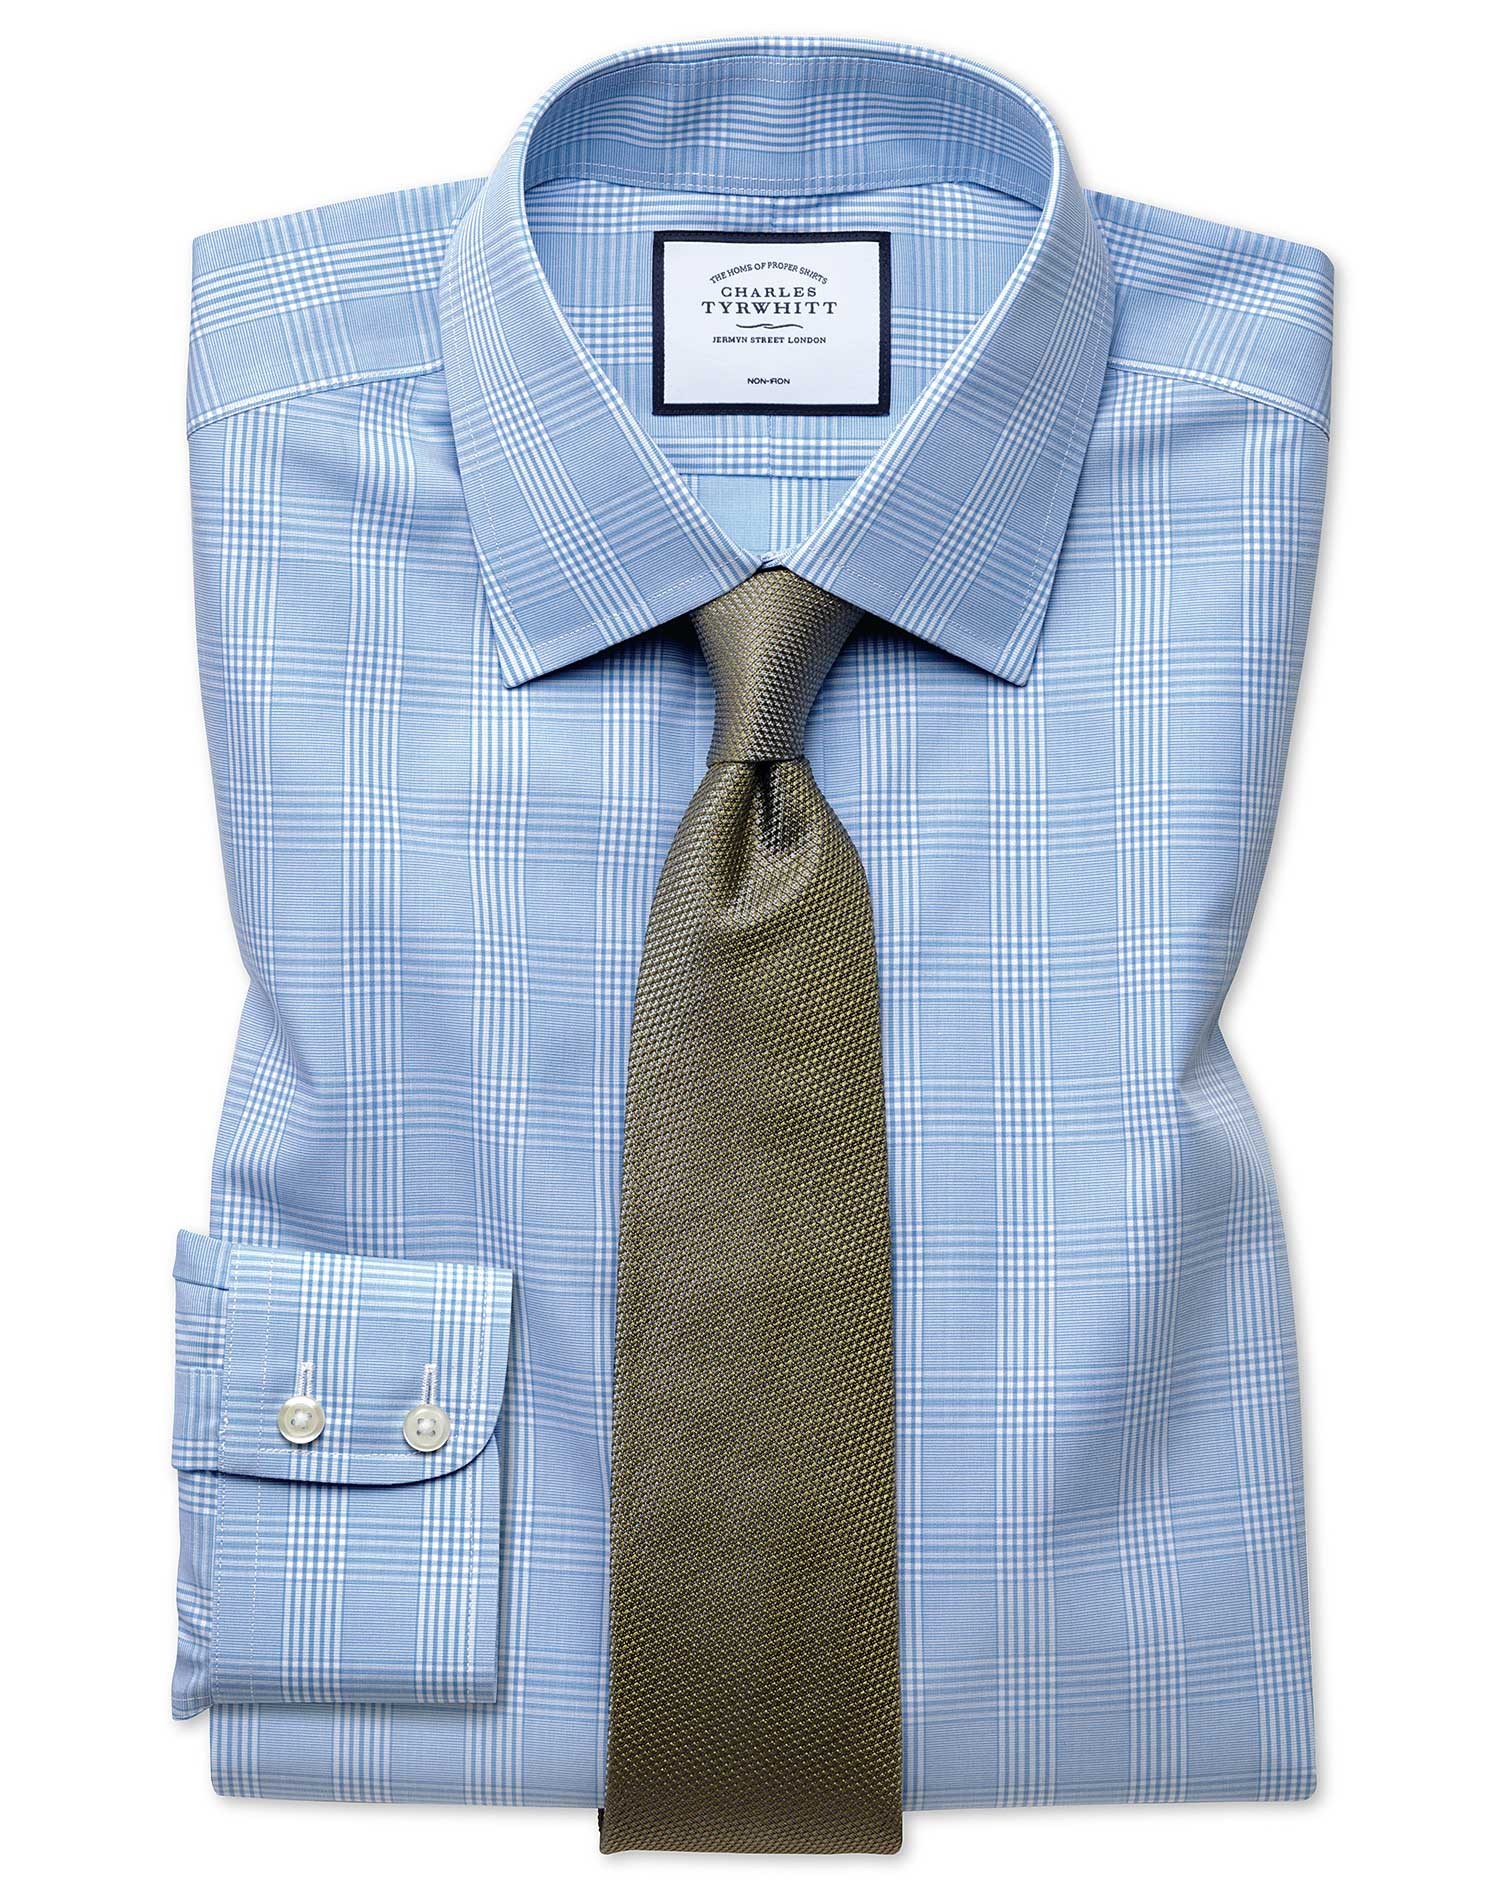 Cotton Classic Fit Non-Iron Prince Of Wales Sky Blue Shirt